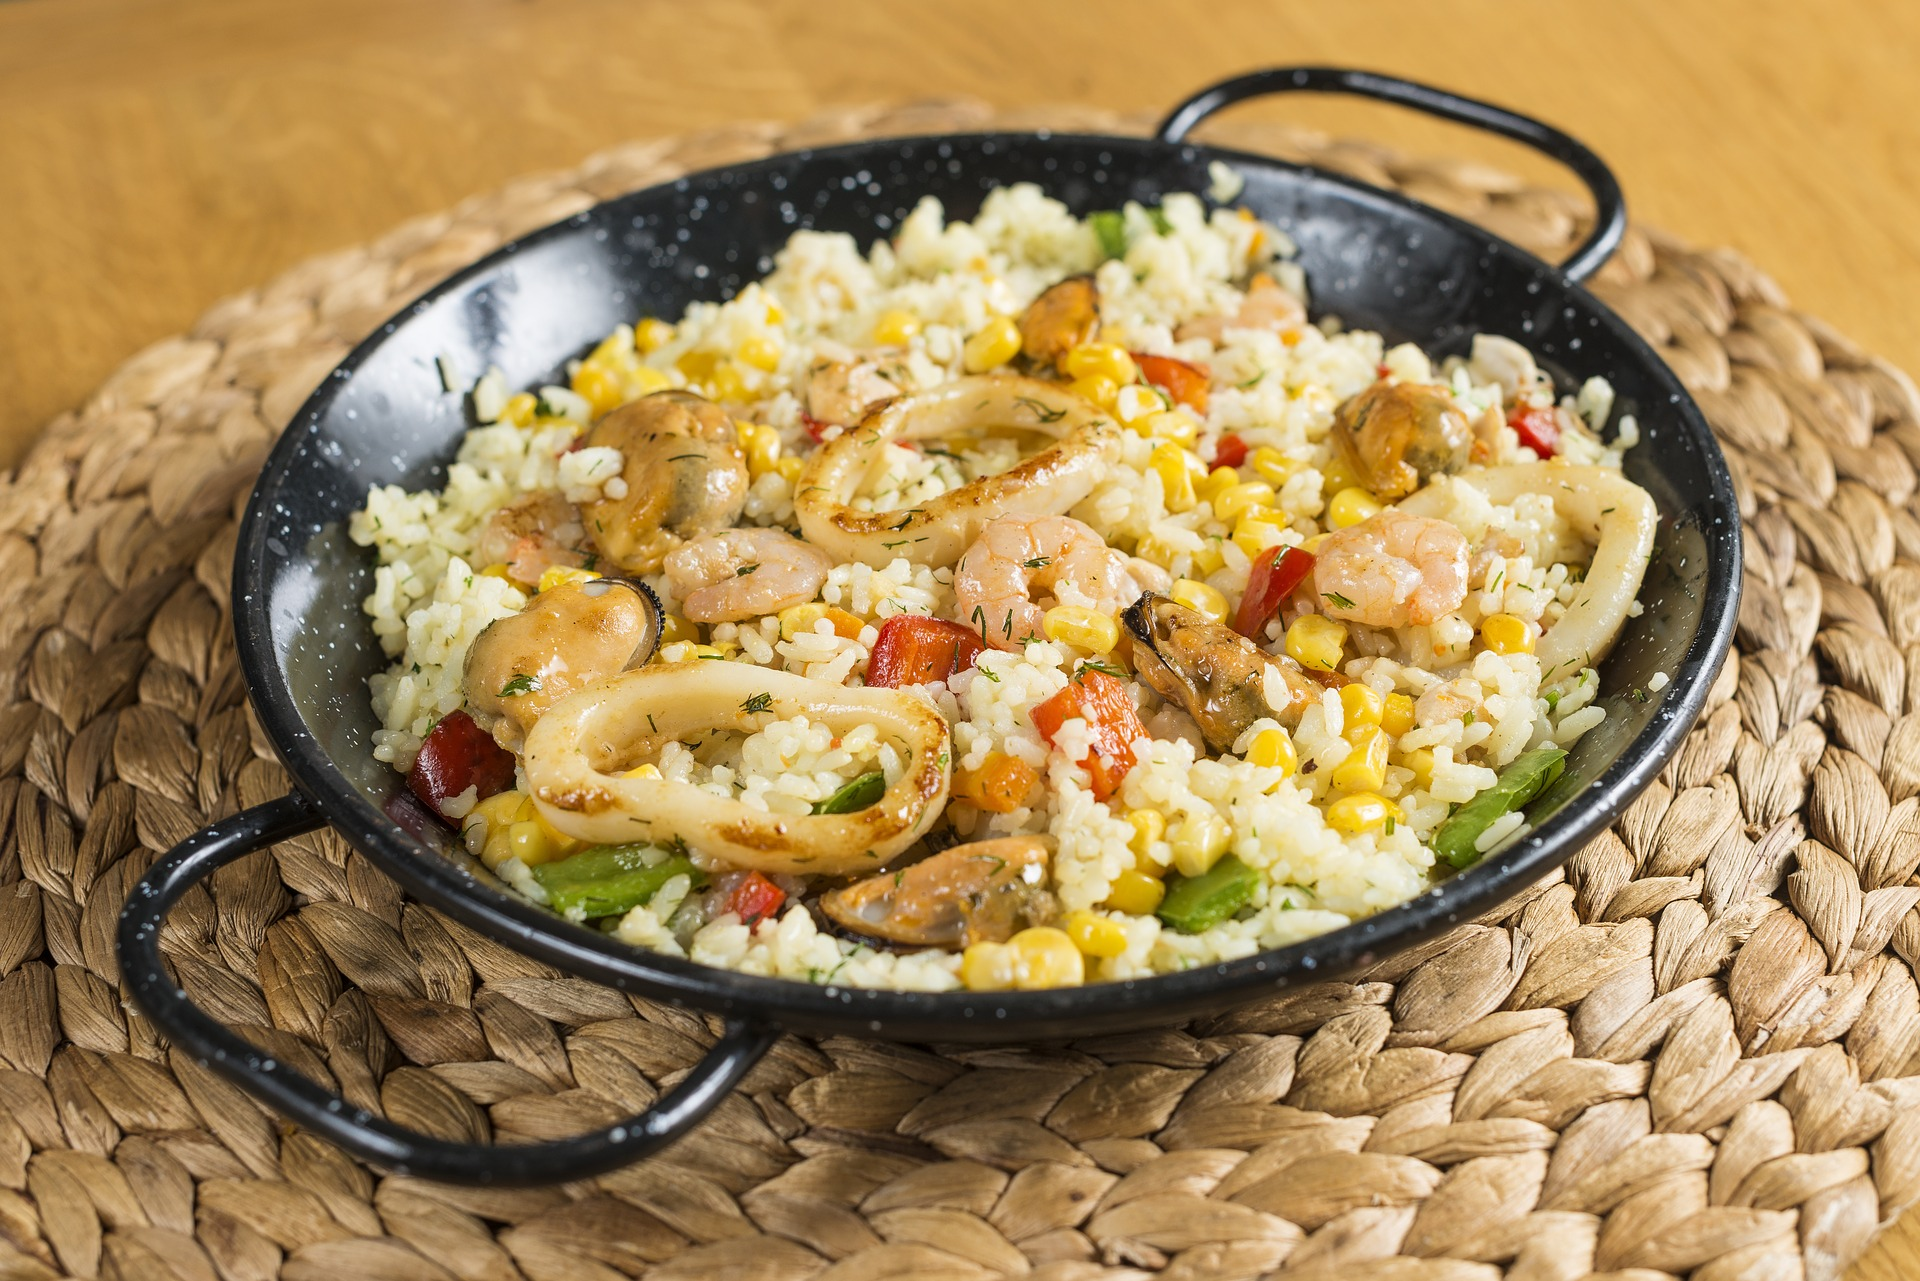 10 best places to eat in barcelona - rice dish